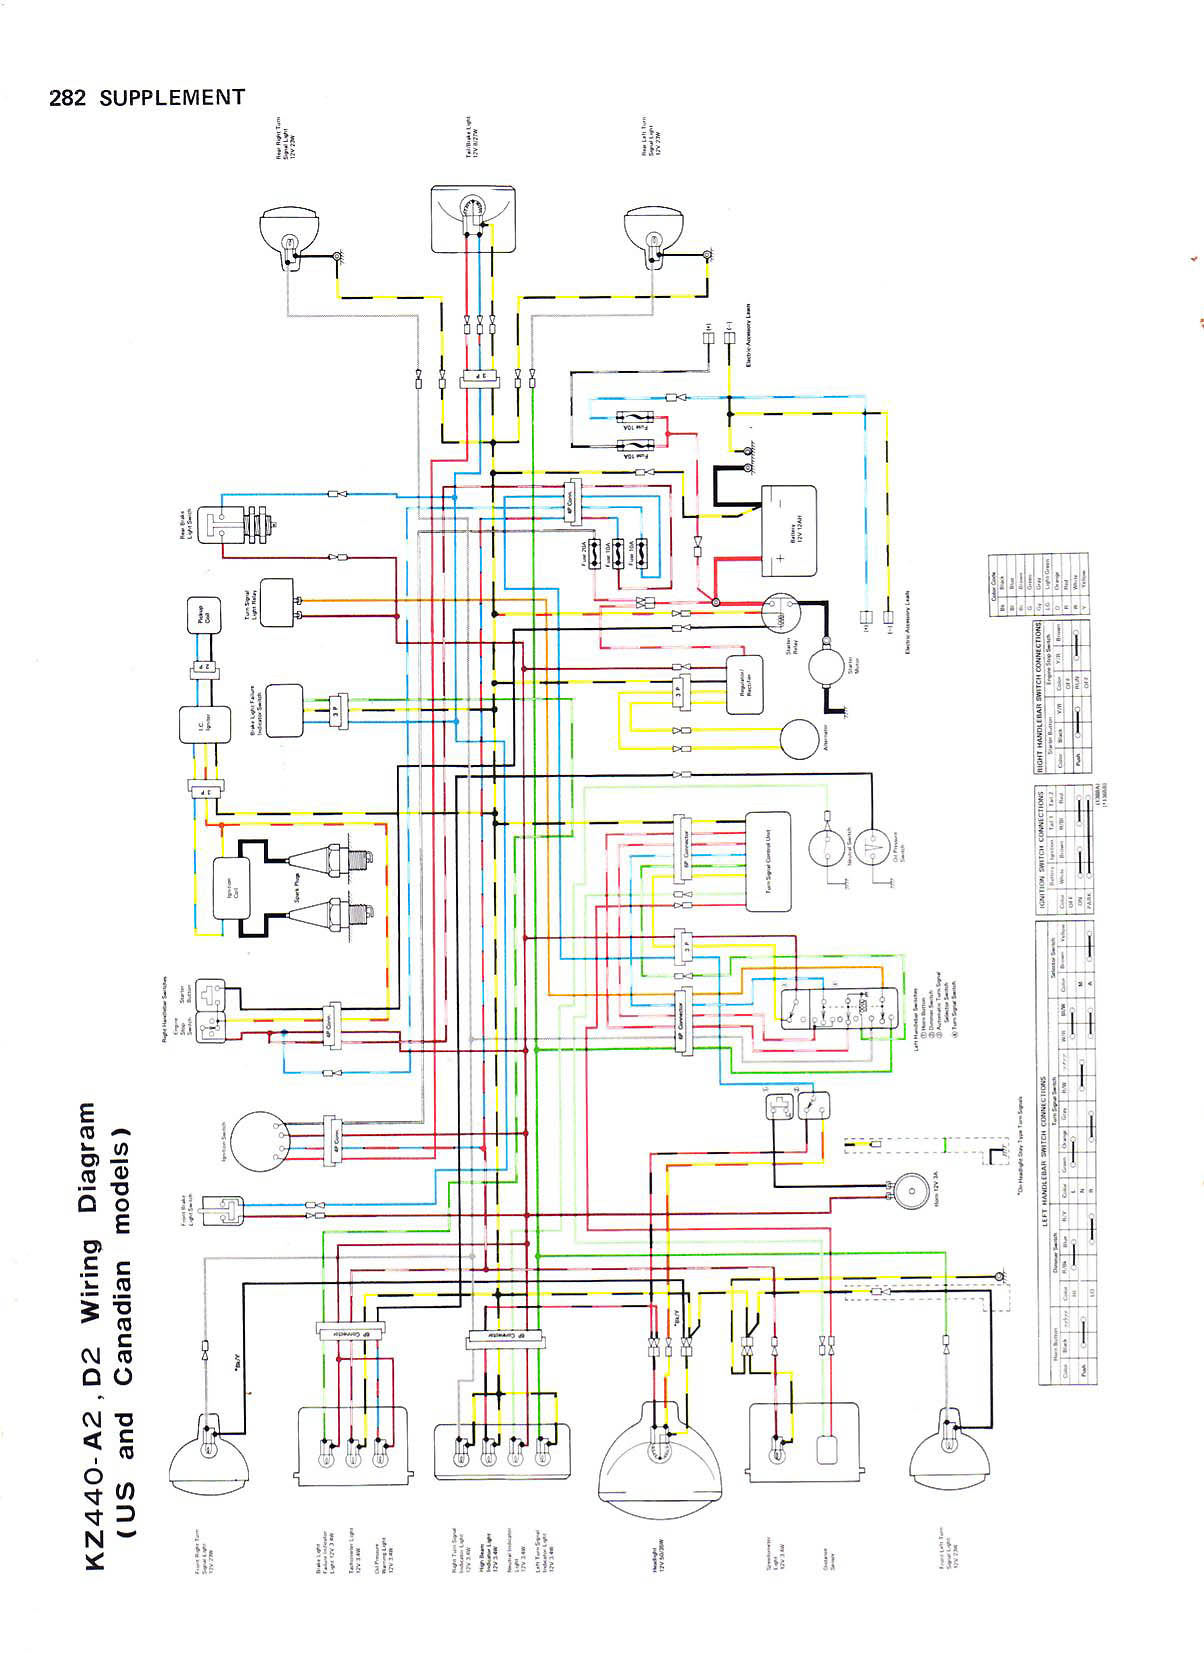 1982 Kawasaki Kz440 Wiring Diagram Will Be A Thing 1980 Kz1000 Color Just Data Rh Ag Skiphire Co Uk 1978 K Z 750